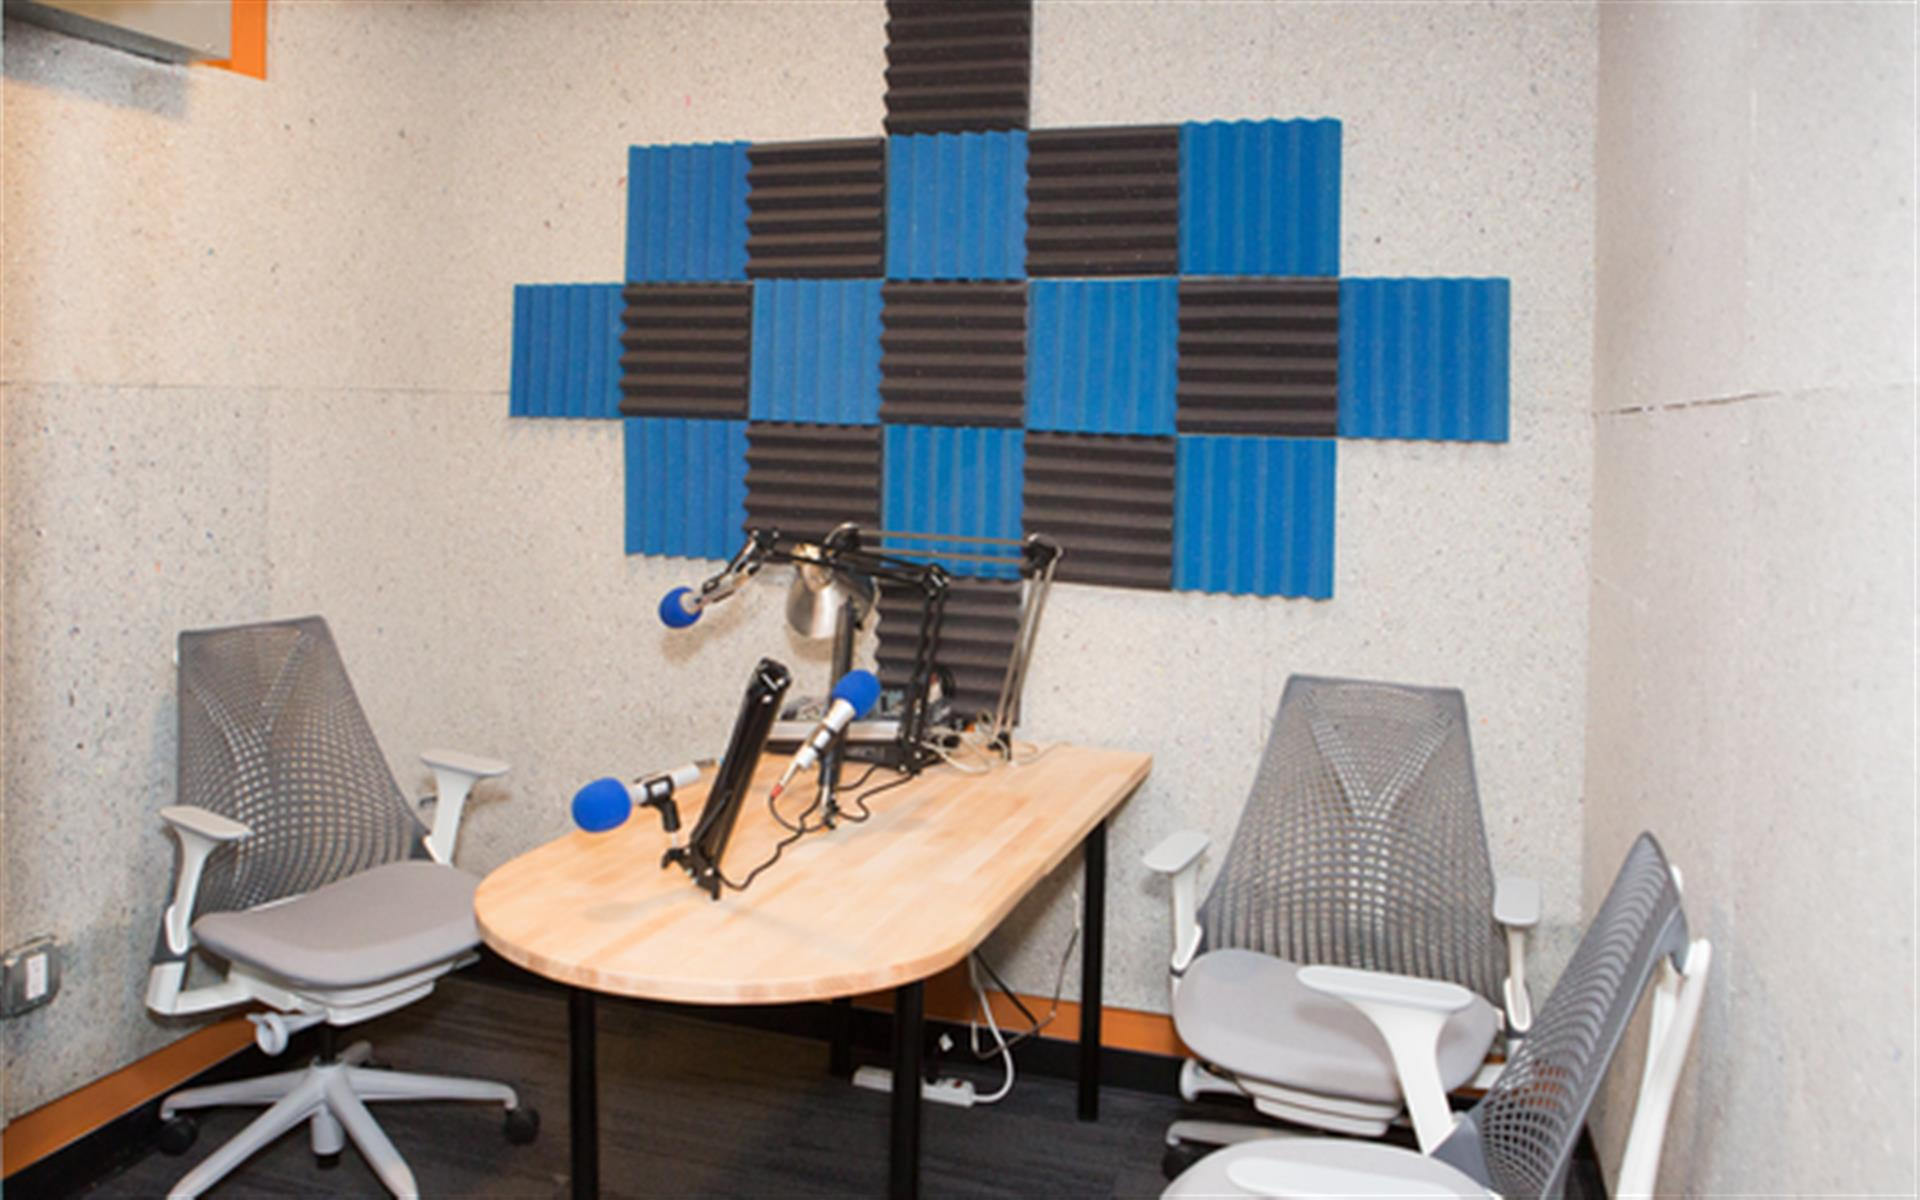 Impact Hub Santa Barbara - Audio Recording Room